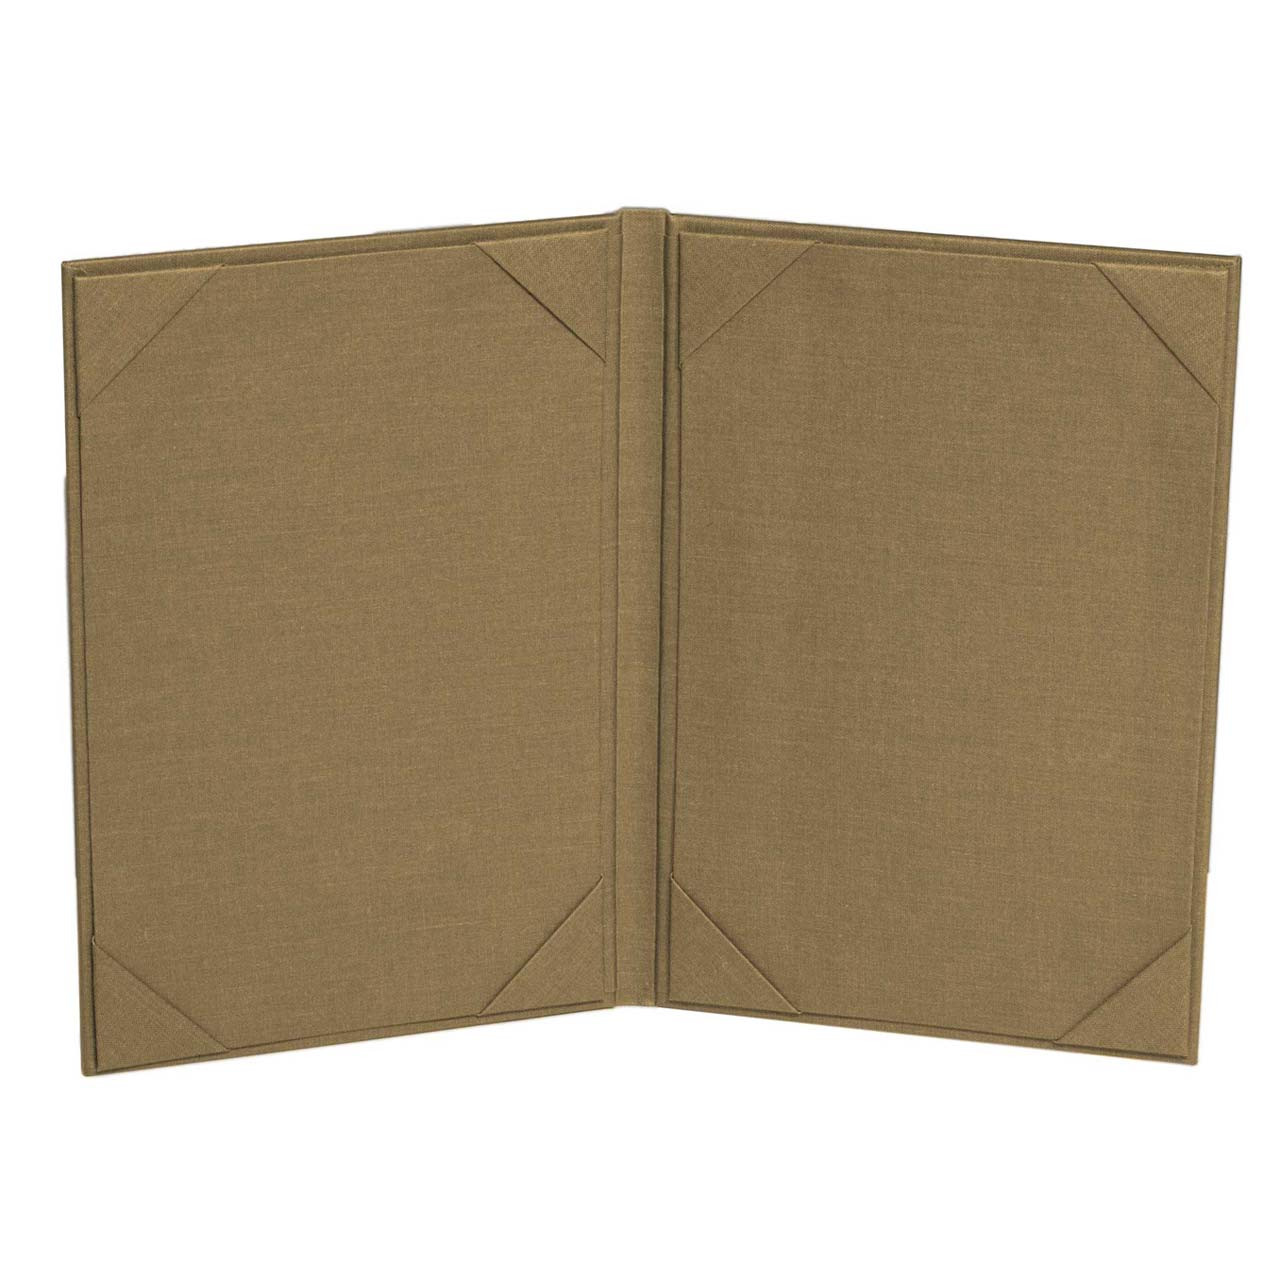 2 Panel Menu Cover - Inside View  Hickory Color